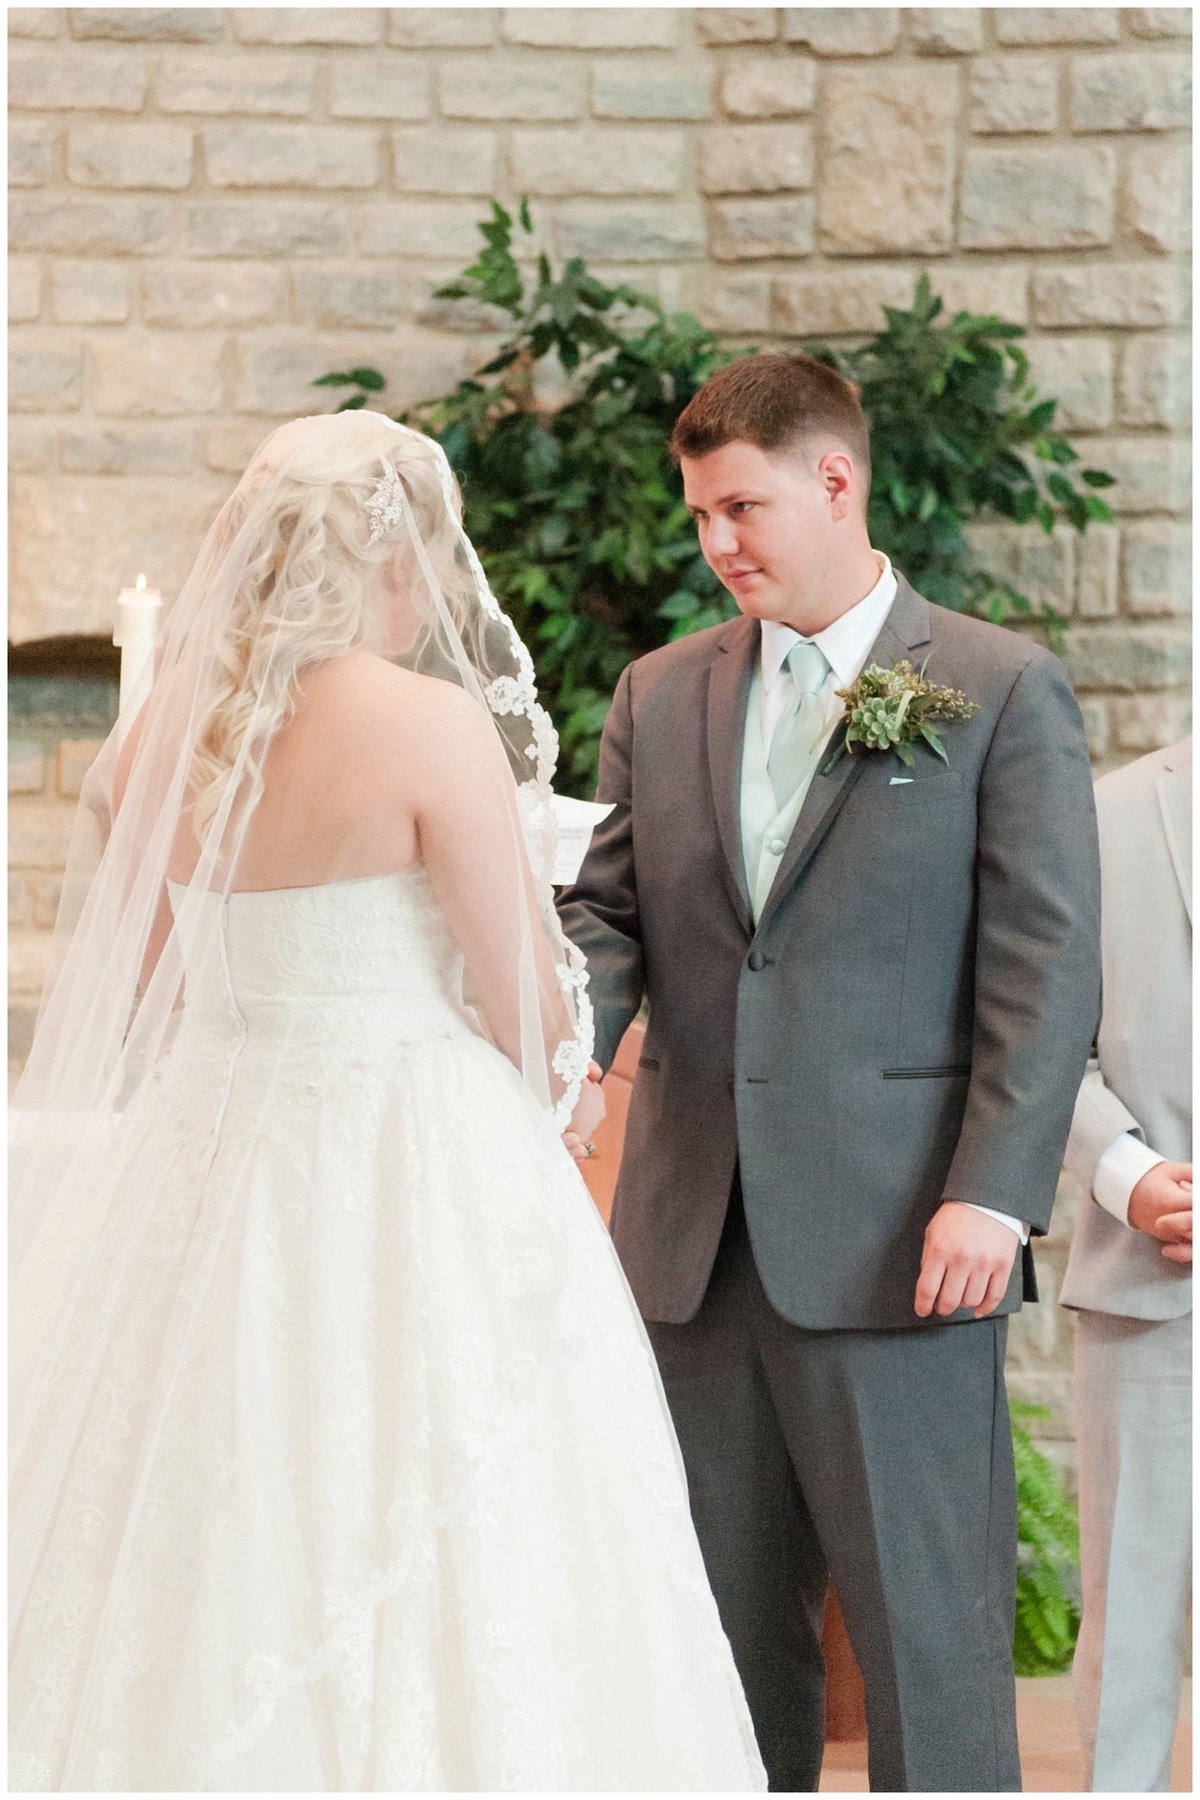 Heritage golf and country club wedding hilliard ohio wedding photos_0030